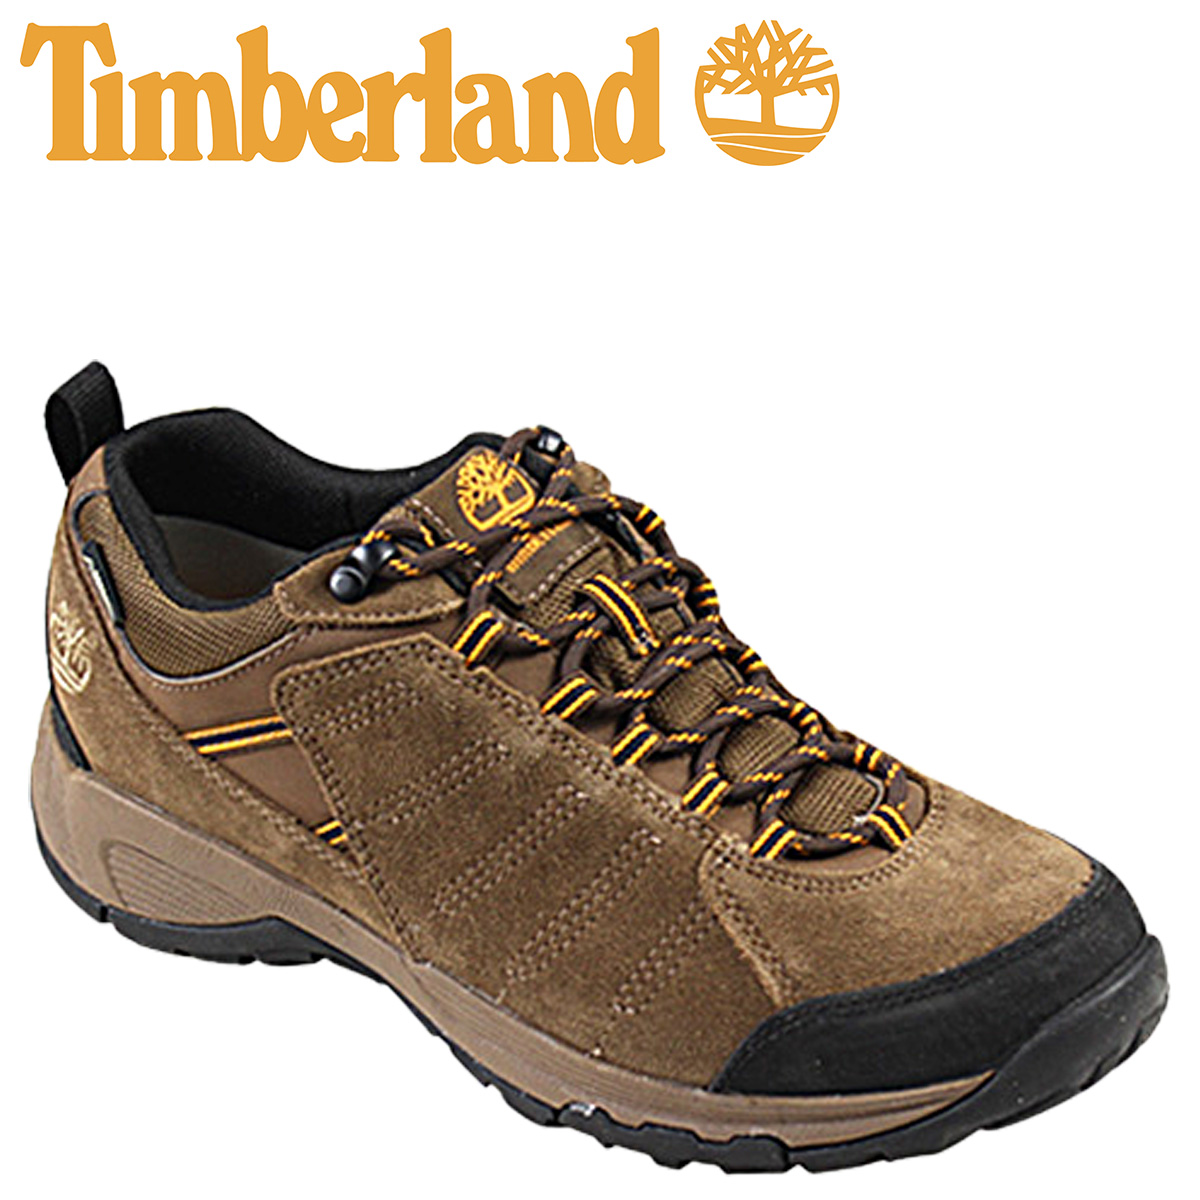 Gore hiking shoes dark Timberland Tex GORE TILTON 9741R brown men Chilton low SHOES HIKING TEX Timberland LOW rQdxBEWCoe